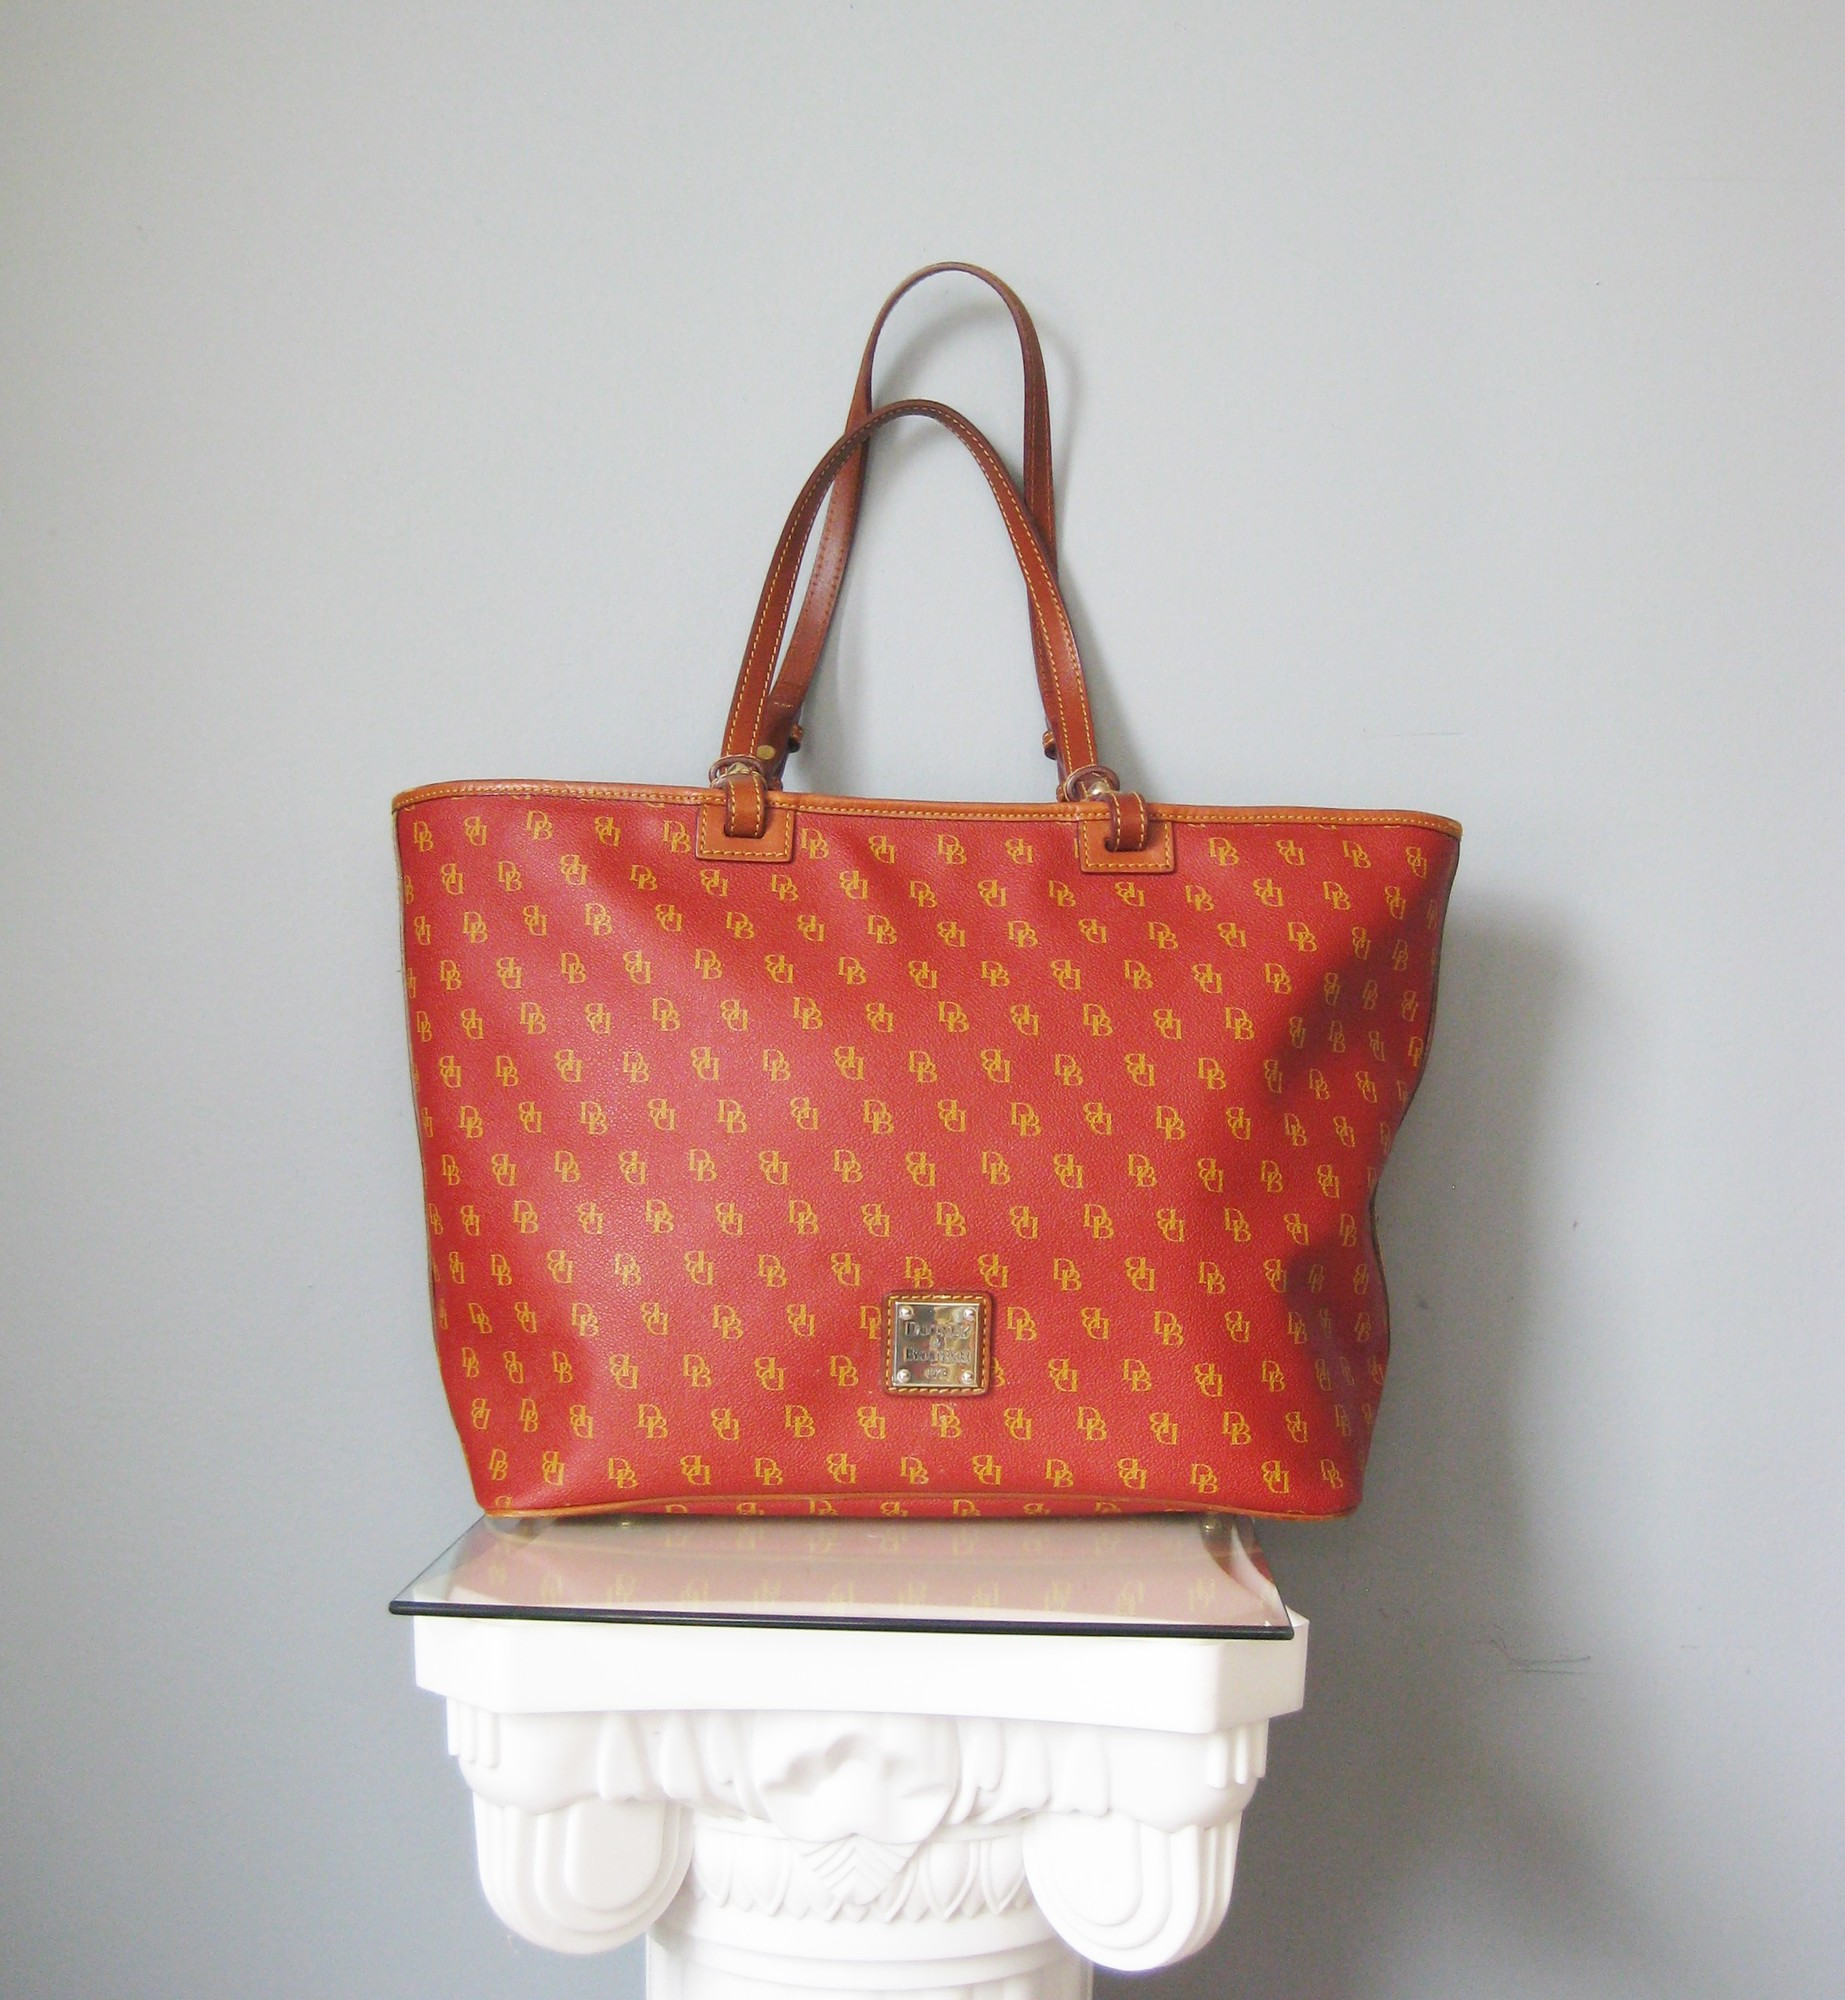 Dooney & Bourke Satchel, Red, Size: None<br /> Gorgeous Dooney & Bourke carryall tote in a deep orange red, so perfect for summer and fall.<br /> Classic and chic shape and super roomy.<br /> The body is coated logo printed leather the trim is brown leather<br /> Double handles<br /> Key clip inside<br /> Interior zippered pockets and slip pockets, one with a snap<br /> <br /> PERFECT condition outside<br /> fair amount of marks on the bottom of the lining inside.<br /> <br /> 18in x 11in x 7in<br /> Handle drop: 12in<br /> <br /> thanks for looking!<br /> #41138